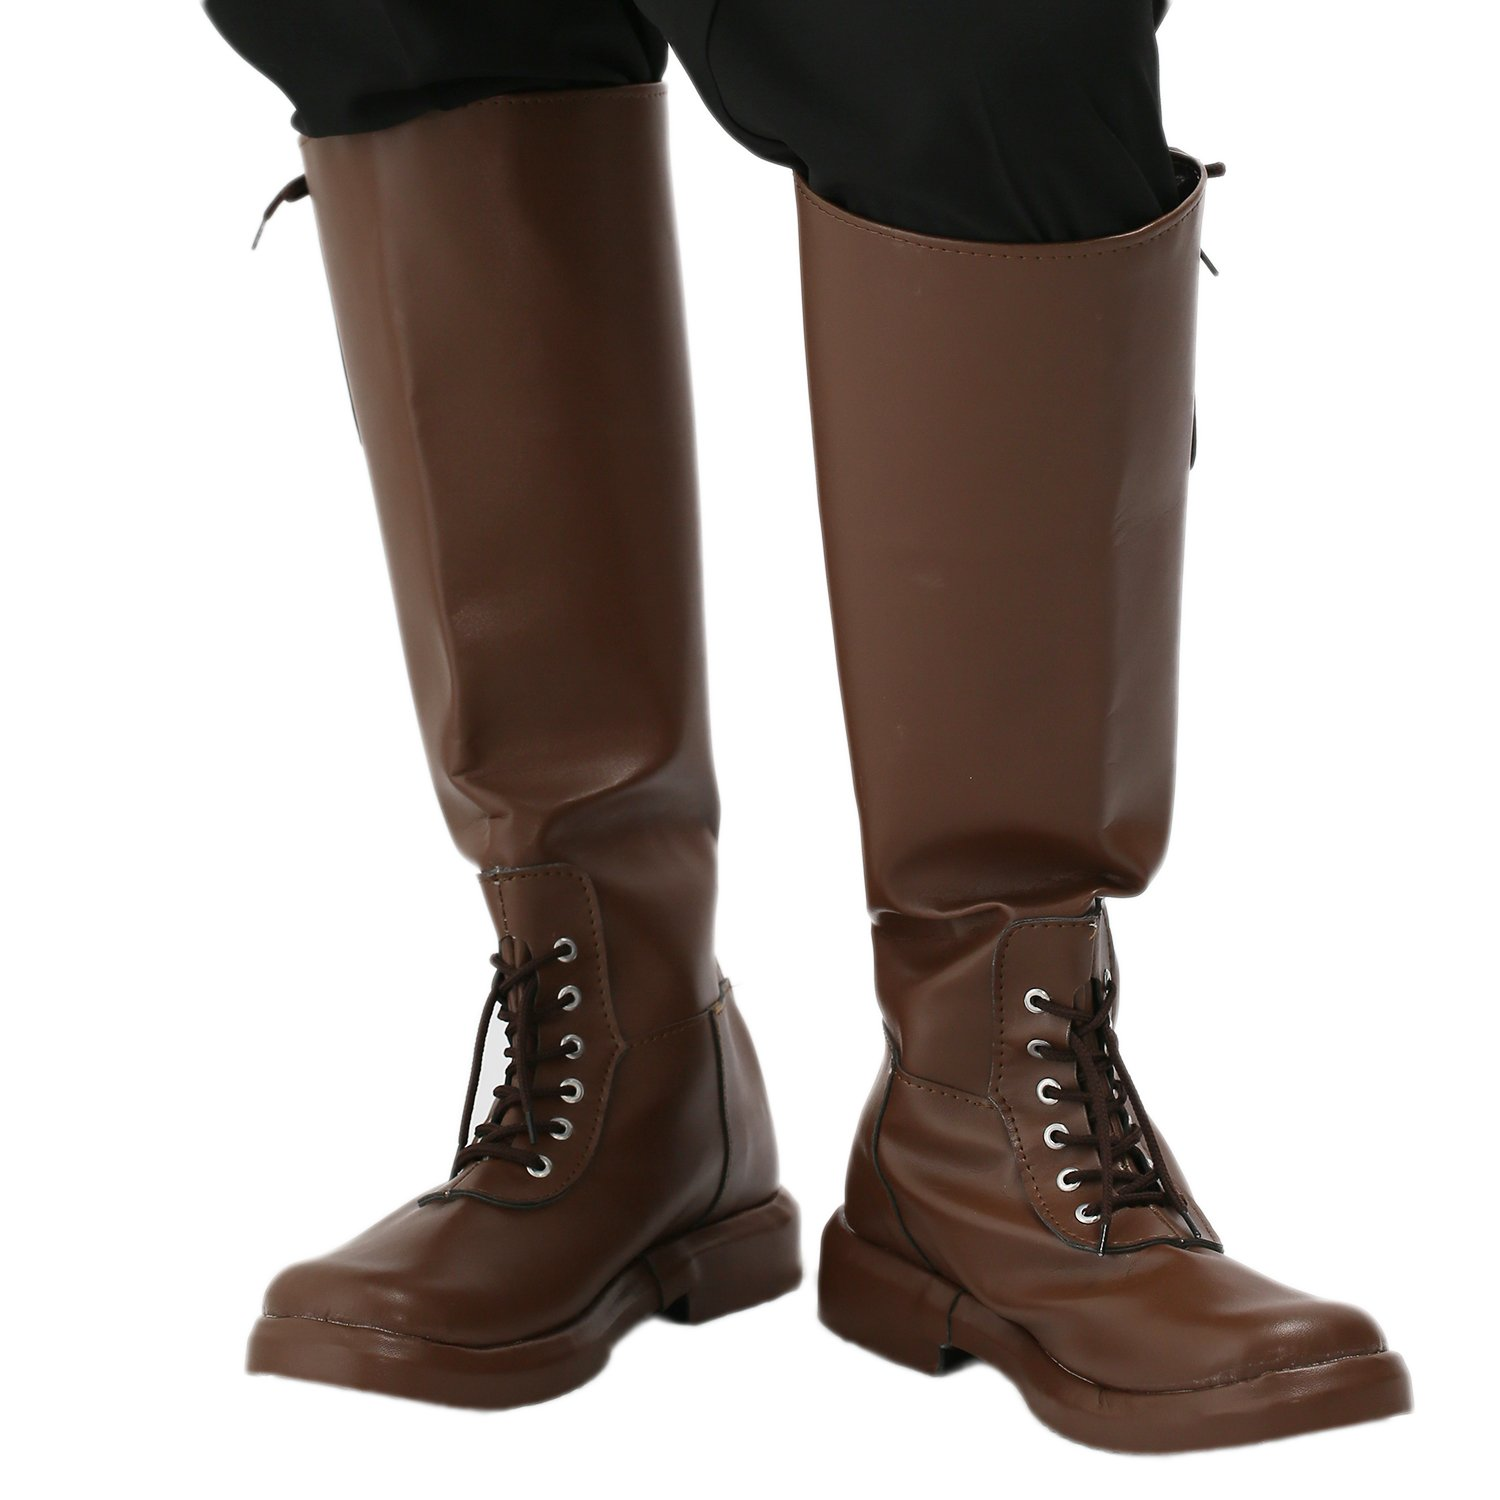 Rocketeer Cliff Shoes Deluxe Brown PU Knee-high Boots Halloween Cosplay Costume Prop 46